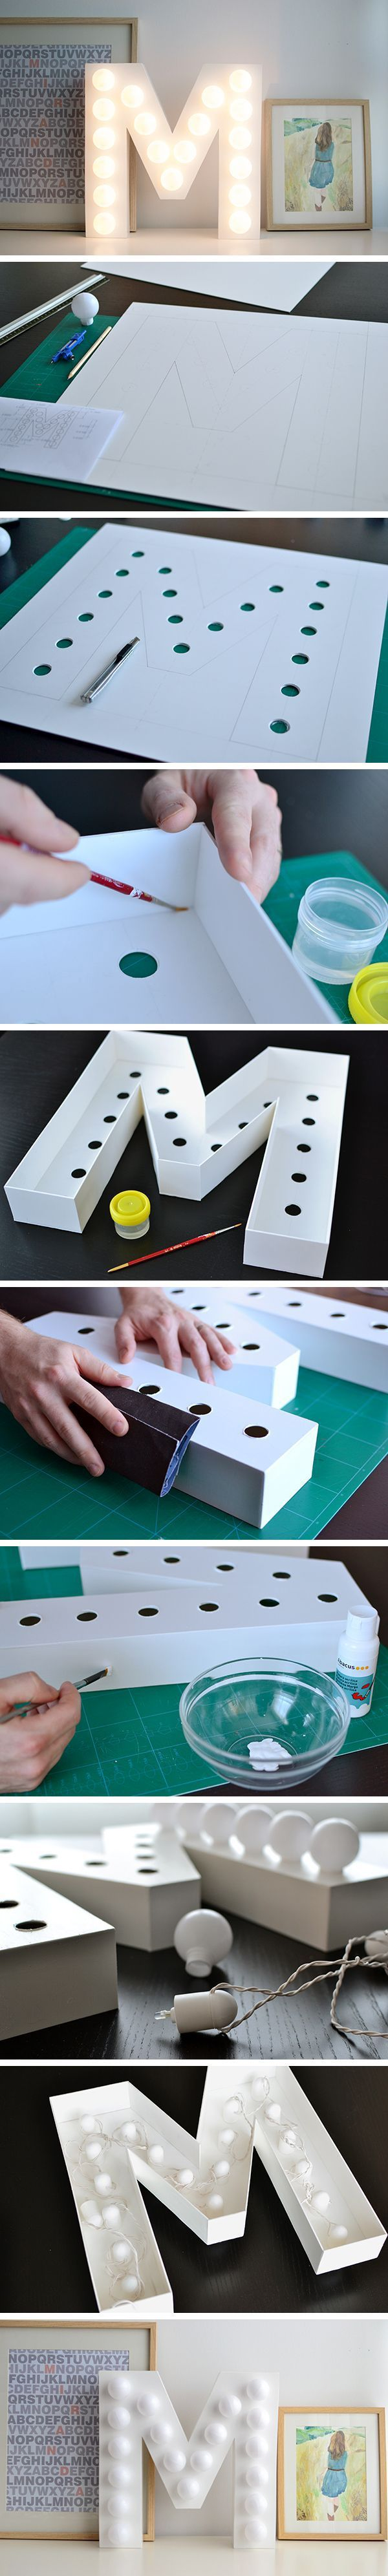 16 Clever DIY Lighting Project Ideas To Get The Best Dorm Room Ever